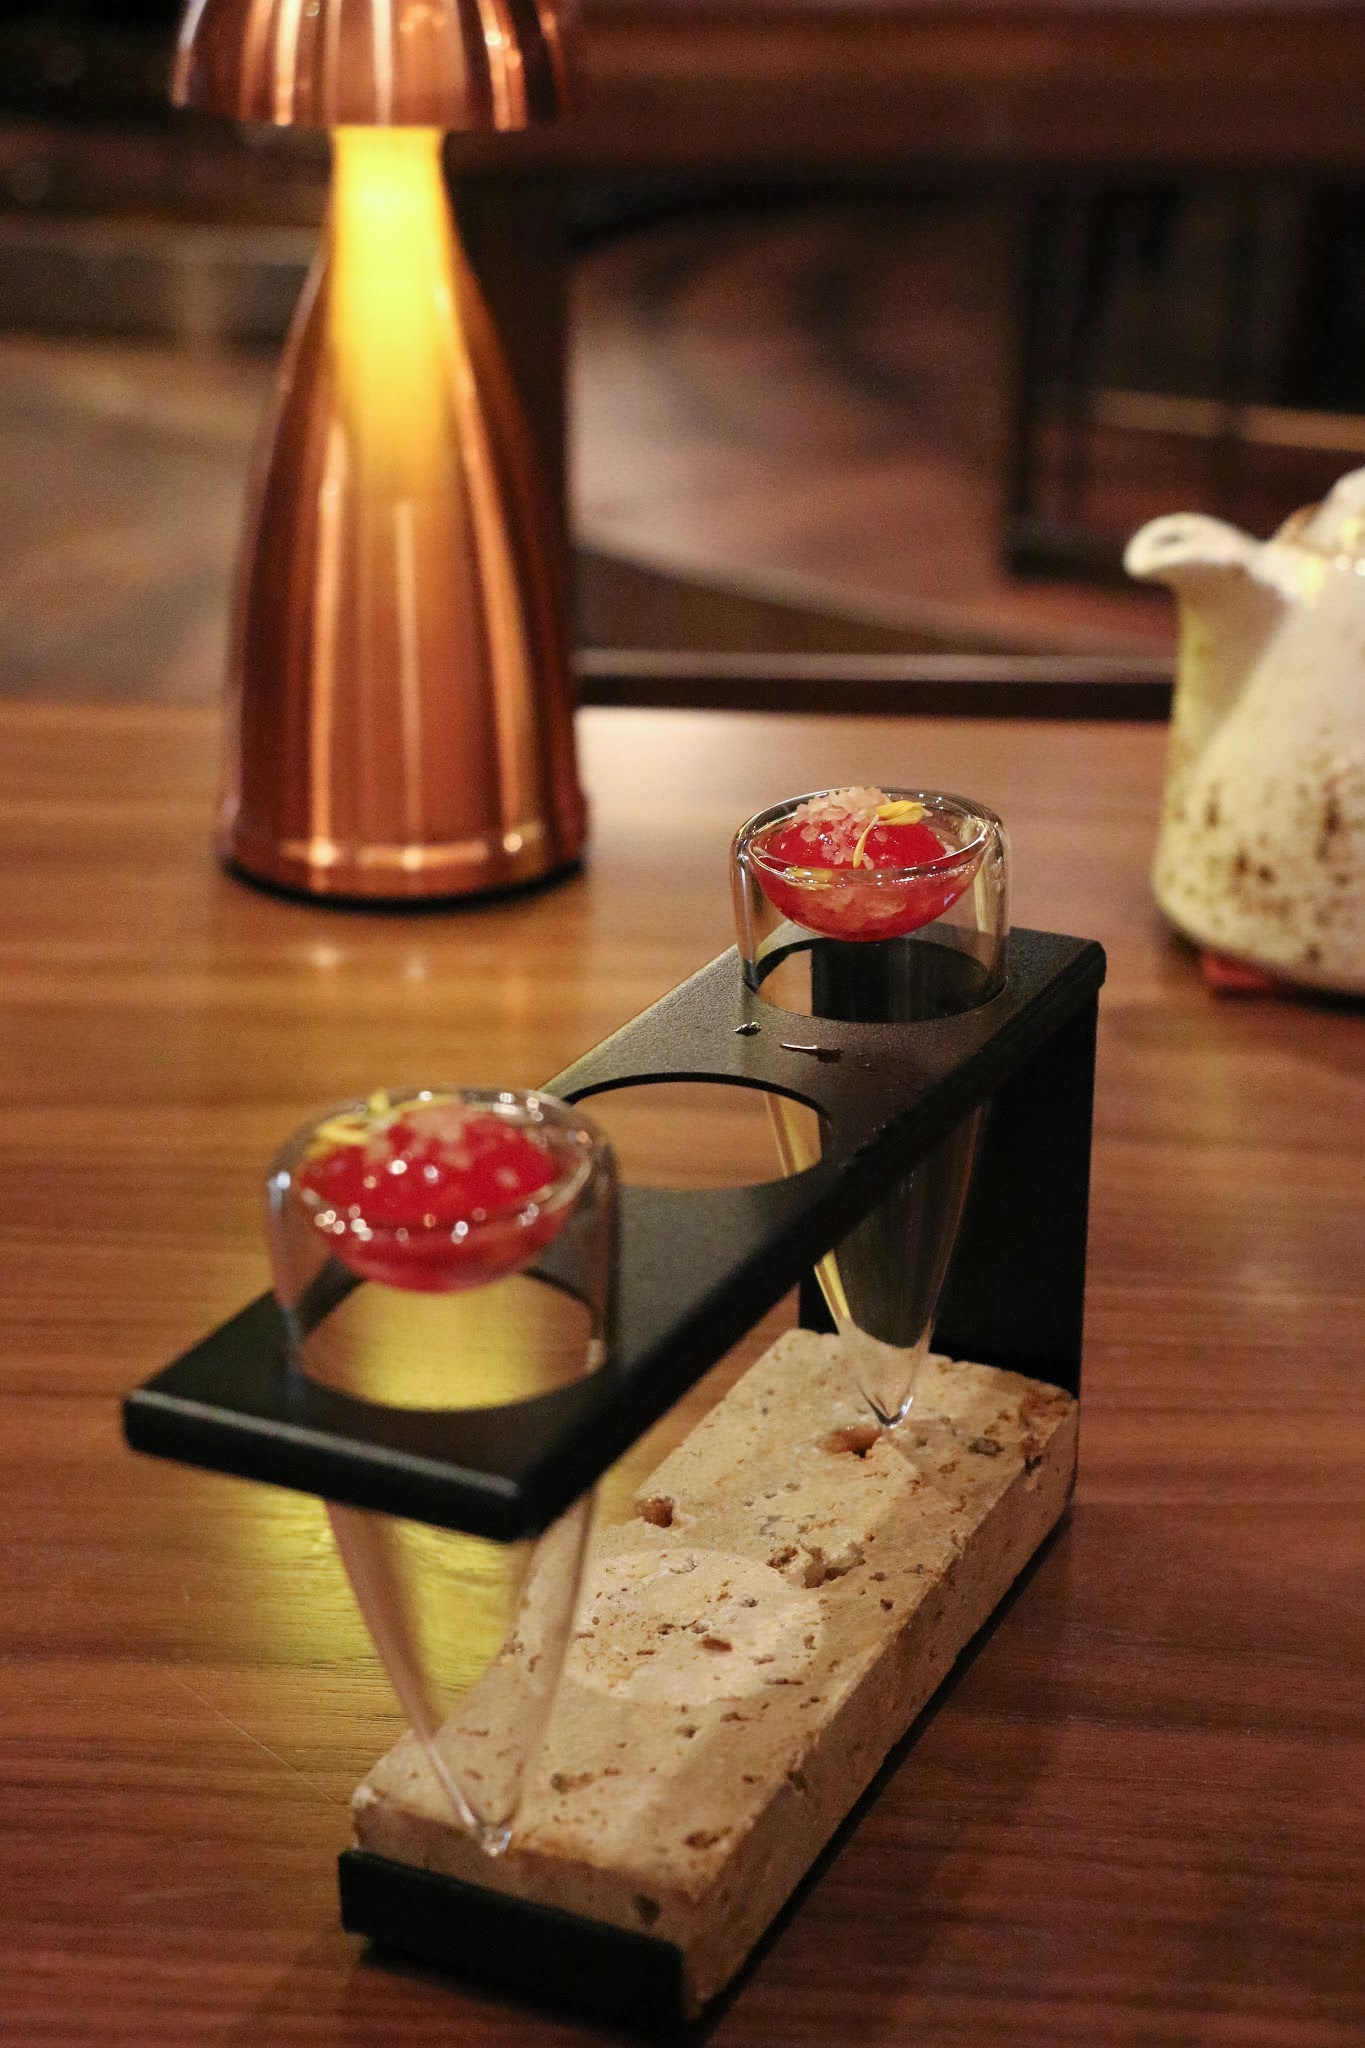 Shanghai Magic, Studio City Macau, Amuse Bouche, Watermelon Poprocks